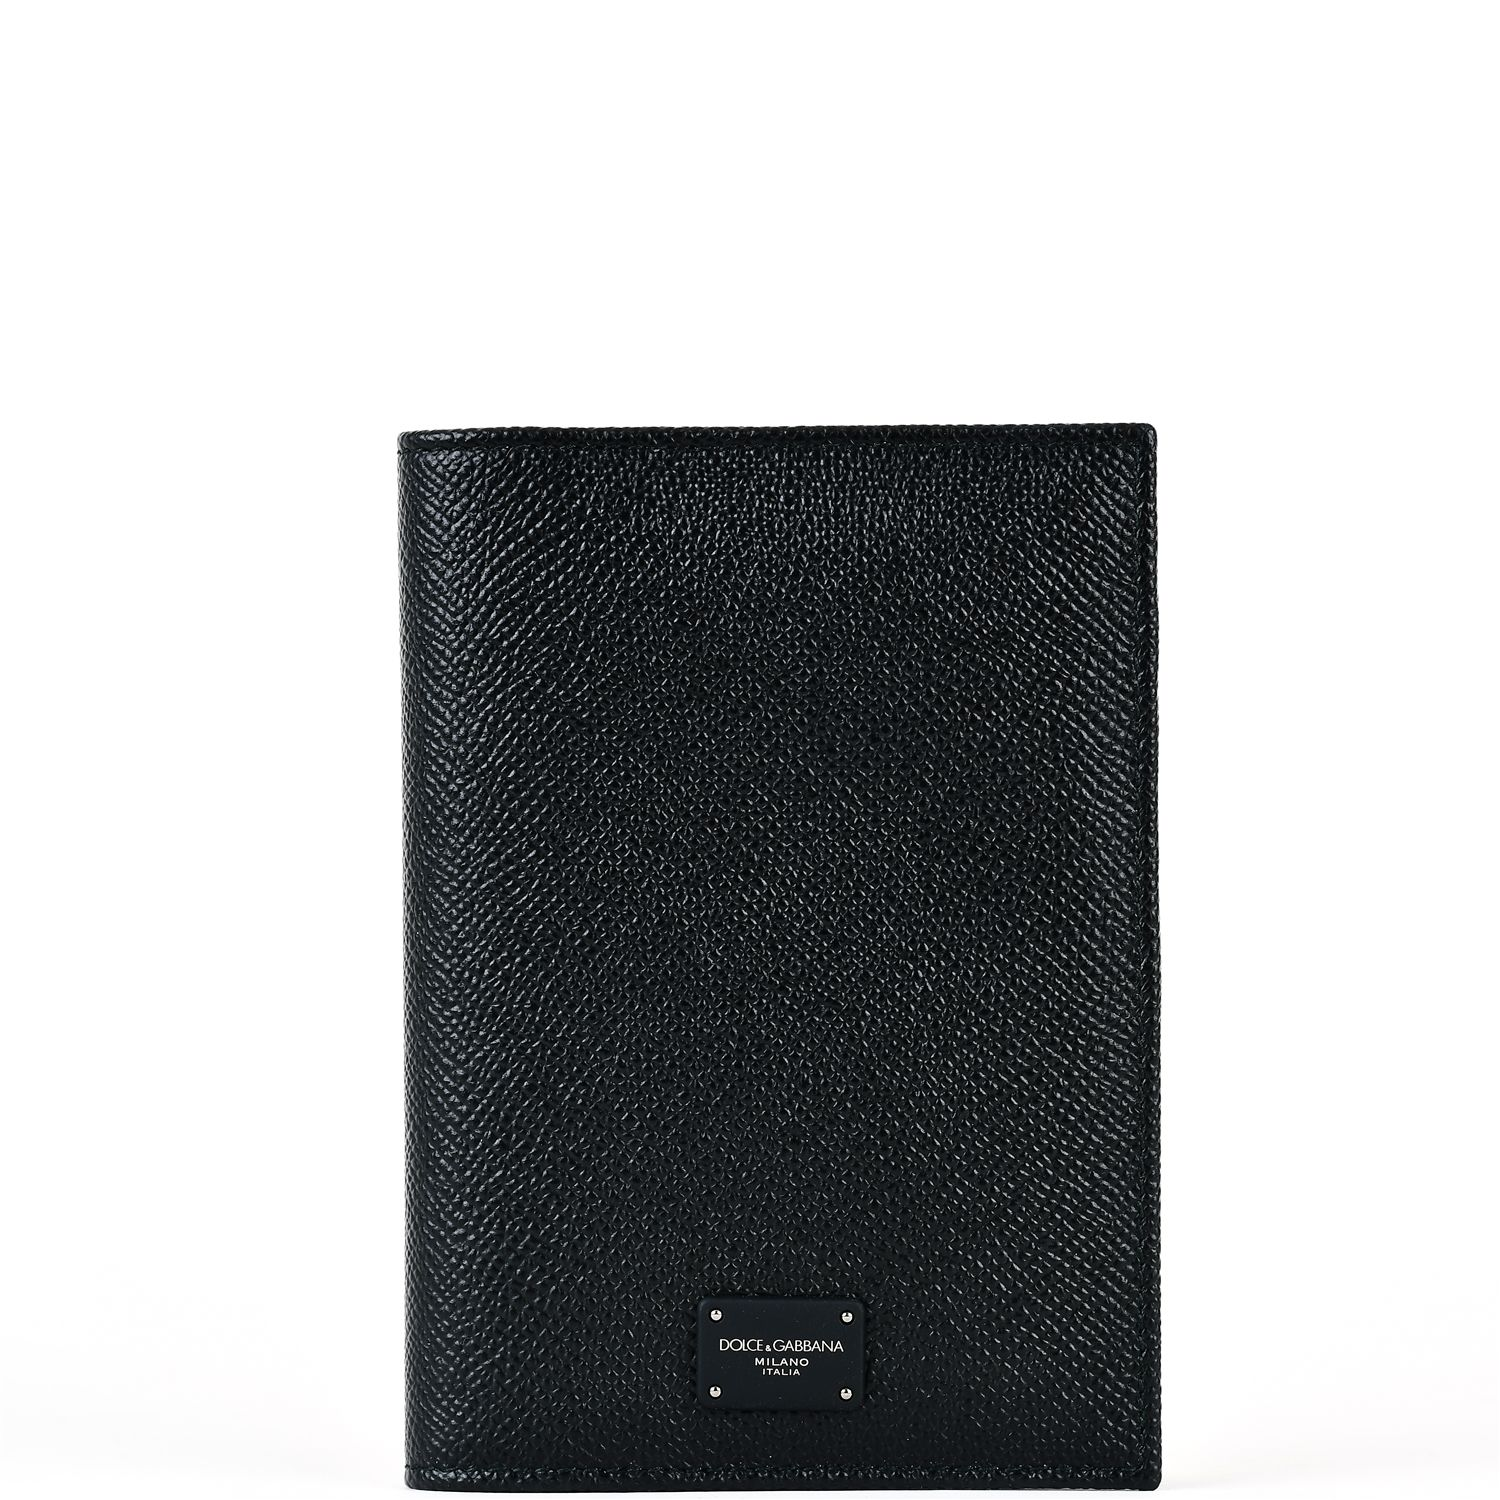 Dolce & Gabbana Dolce & Gabbana Black Leather Case